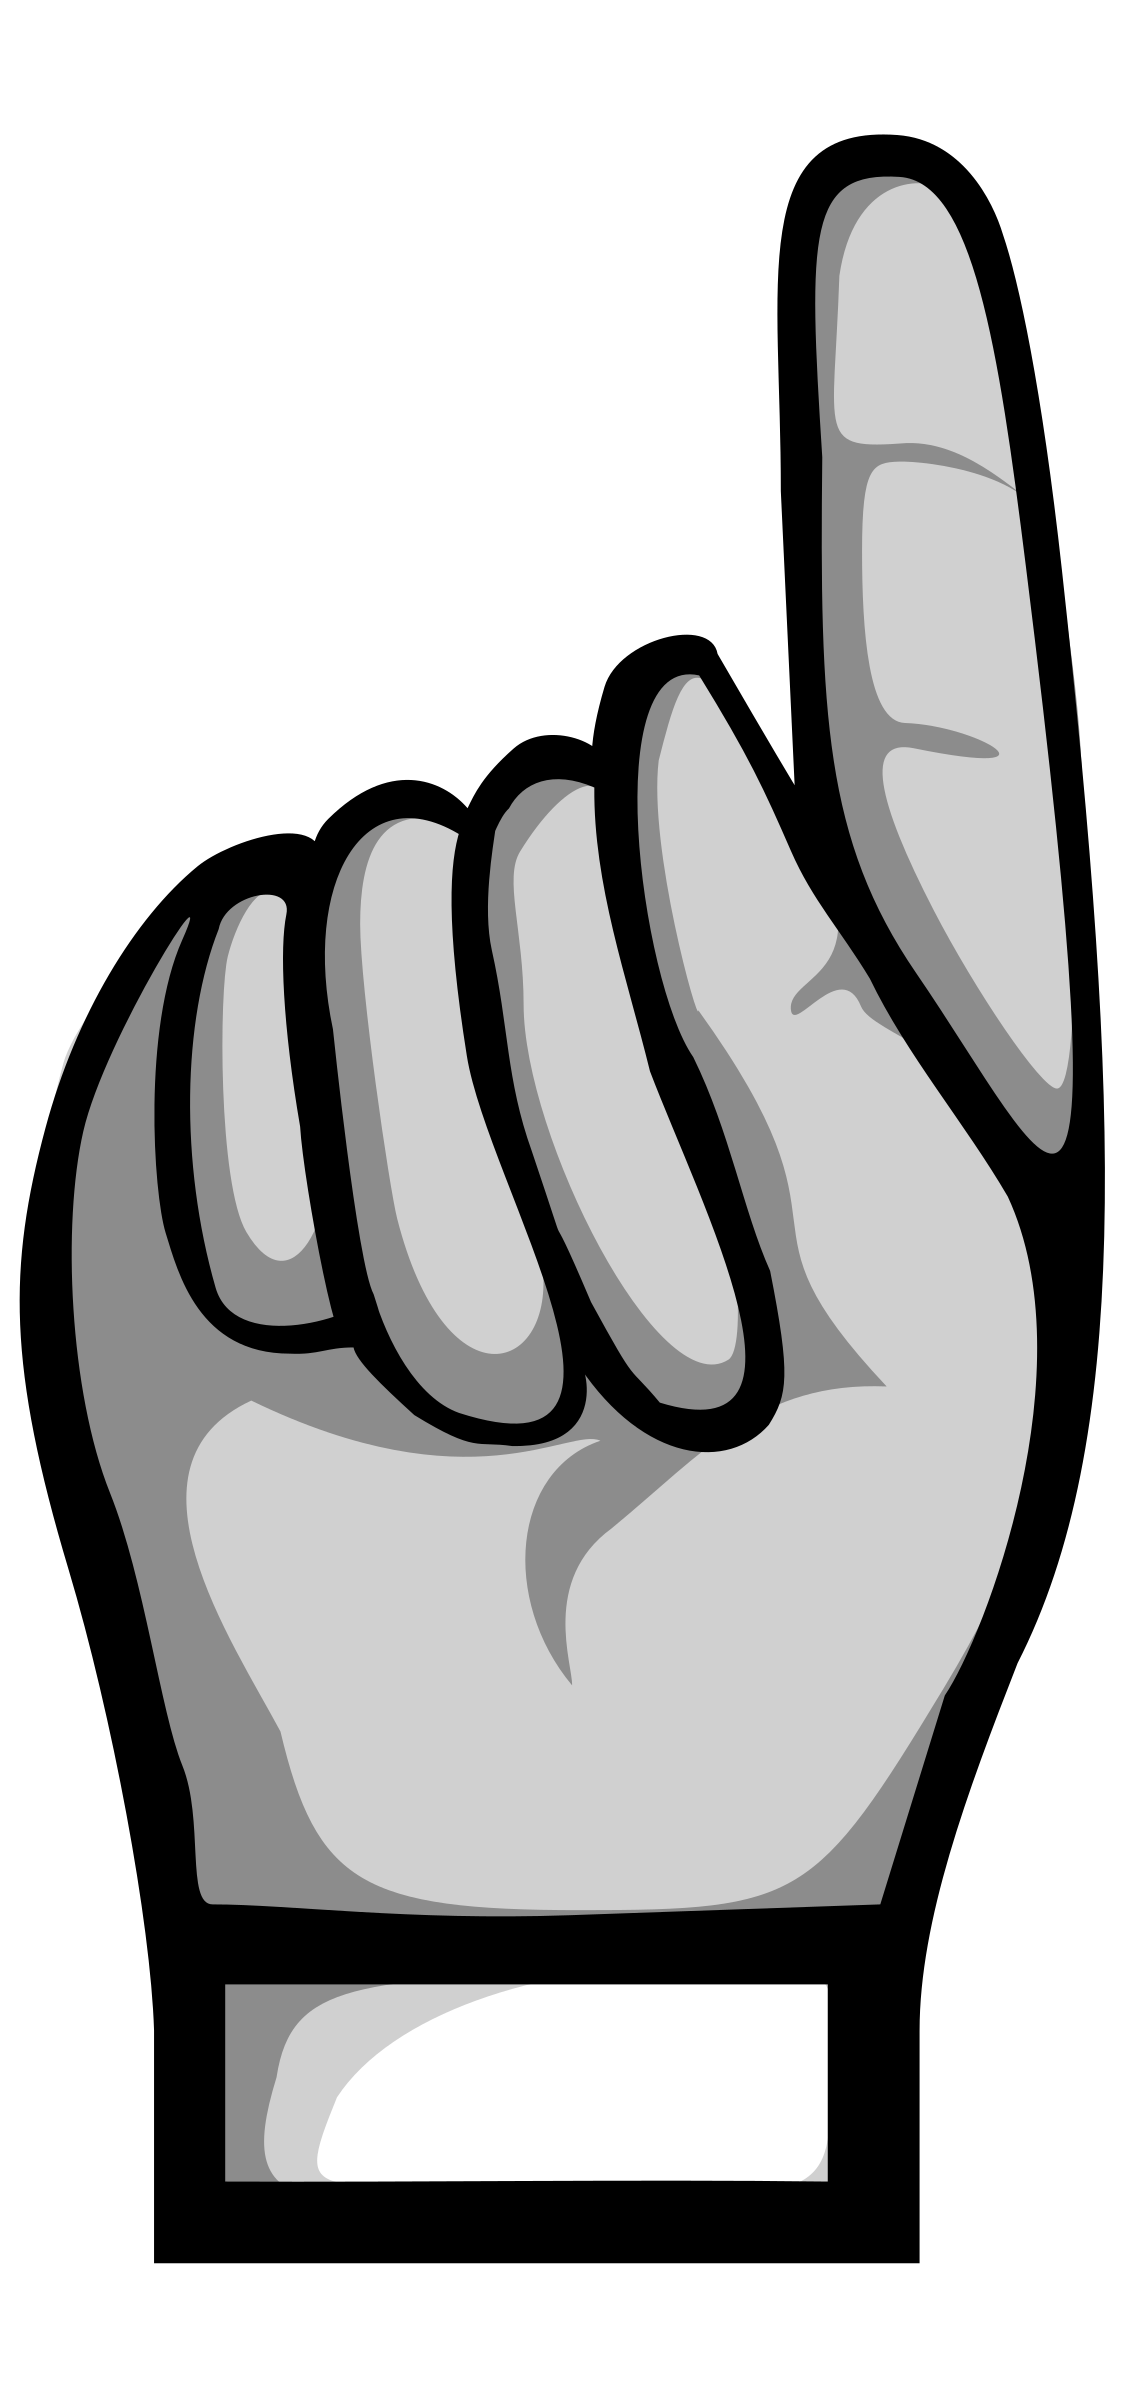 Up clipart pointing. Hands black and white